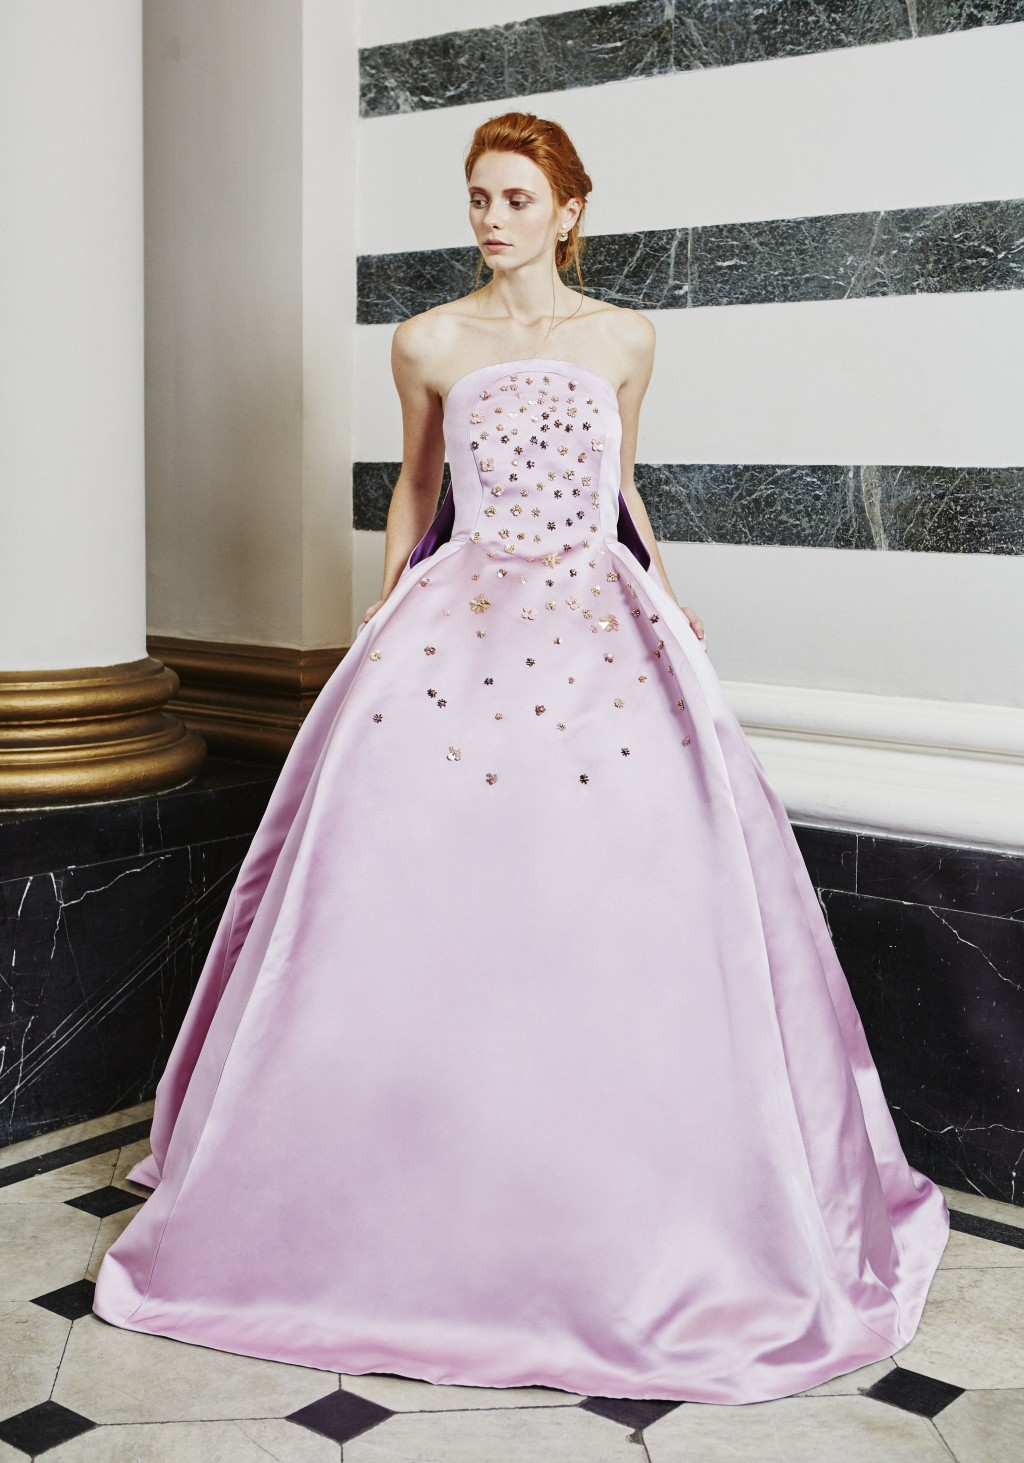 Reem Juan's Spring/Summer 2016 Collection is Fit for a Modern Princess